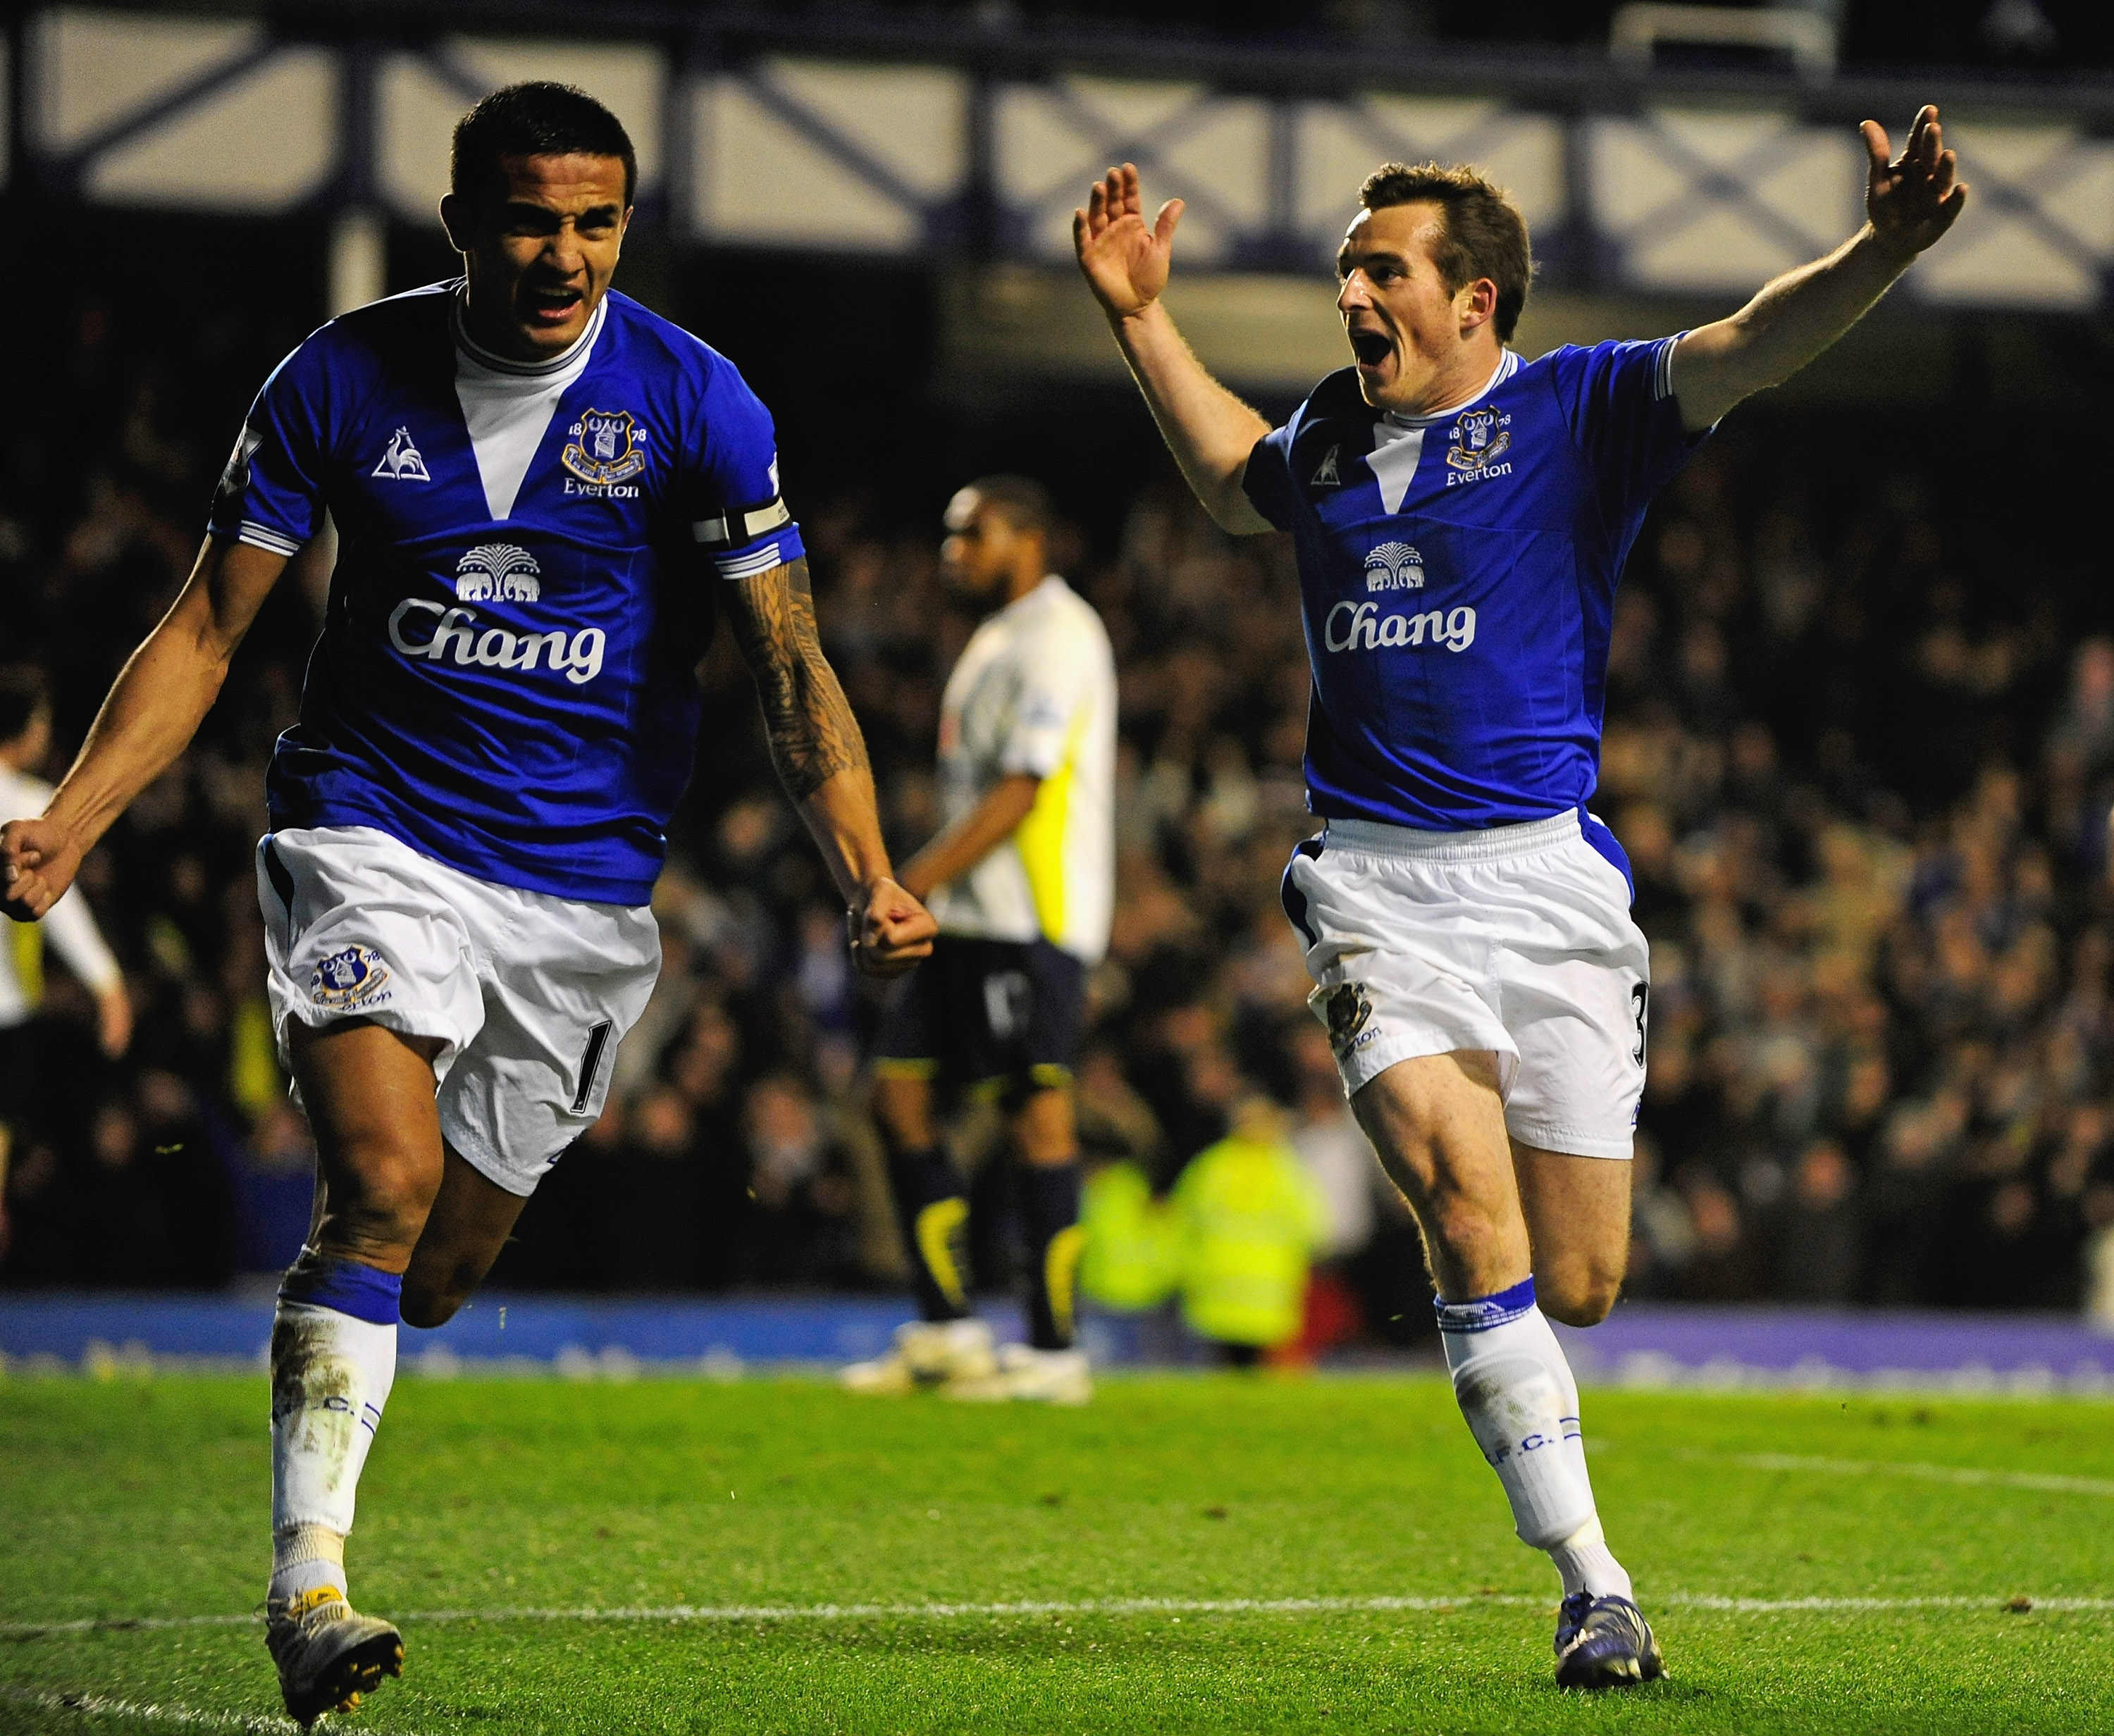 LIVERPOOL, ENGLAND - DECEMBER 06:  Tim Cahill of Everton celebrates scoring his team's second goal with team mate Leighton Baines (R) during the Barclays Premier League match between Everton and Tottenham Hotspur at Goodison Park on December 6, 2009 in Li